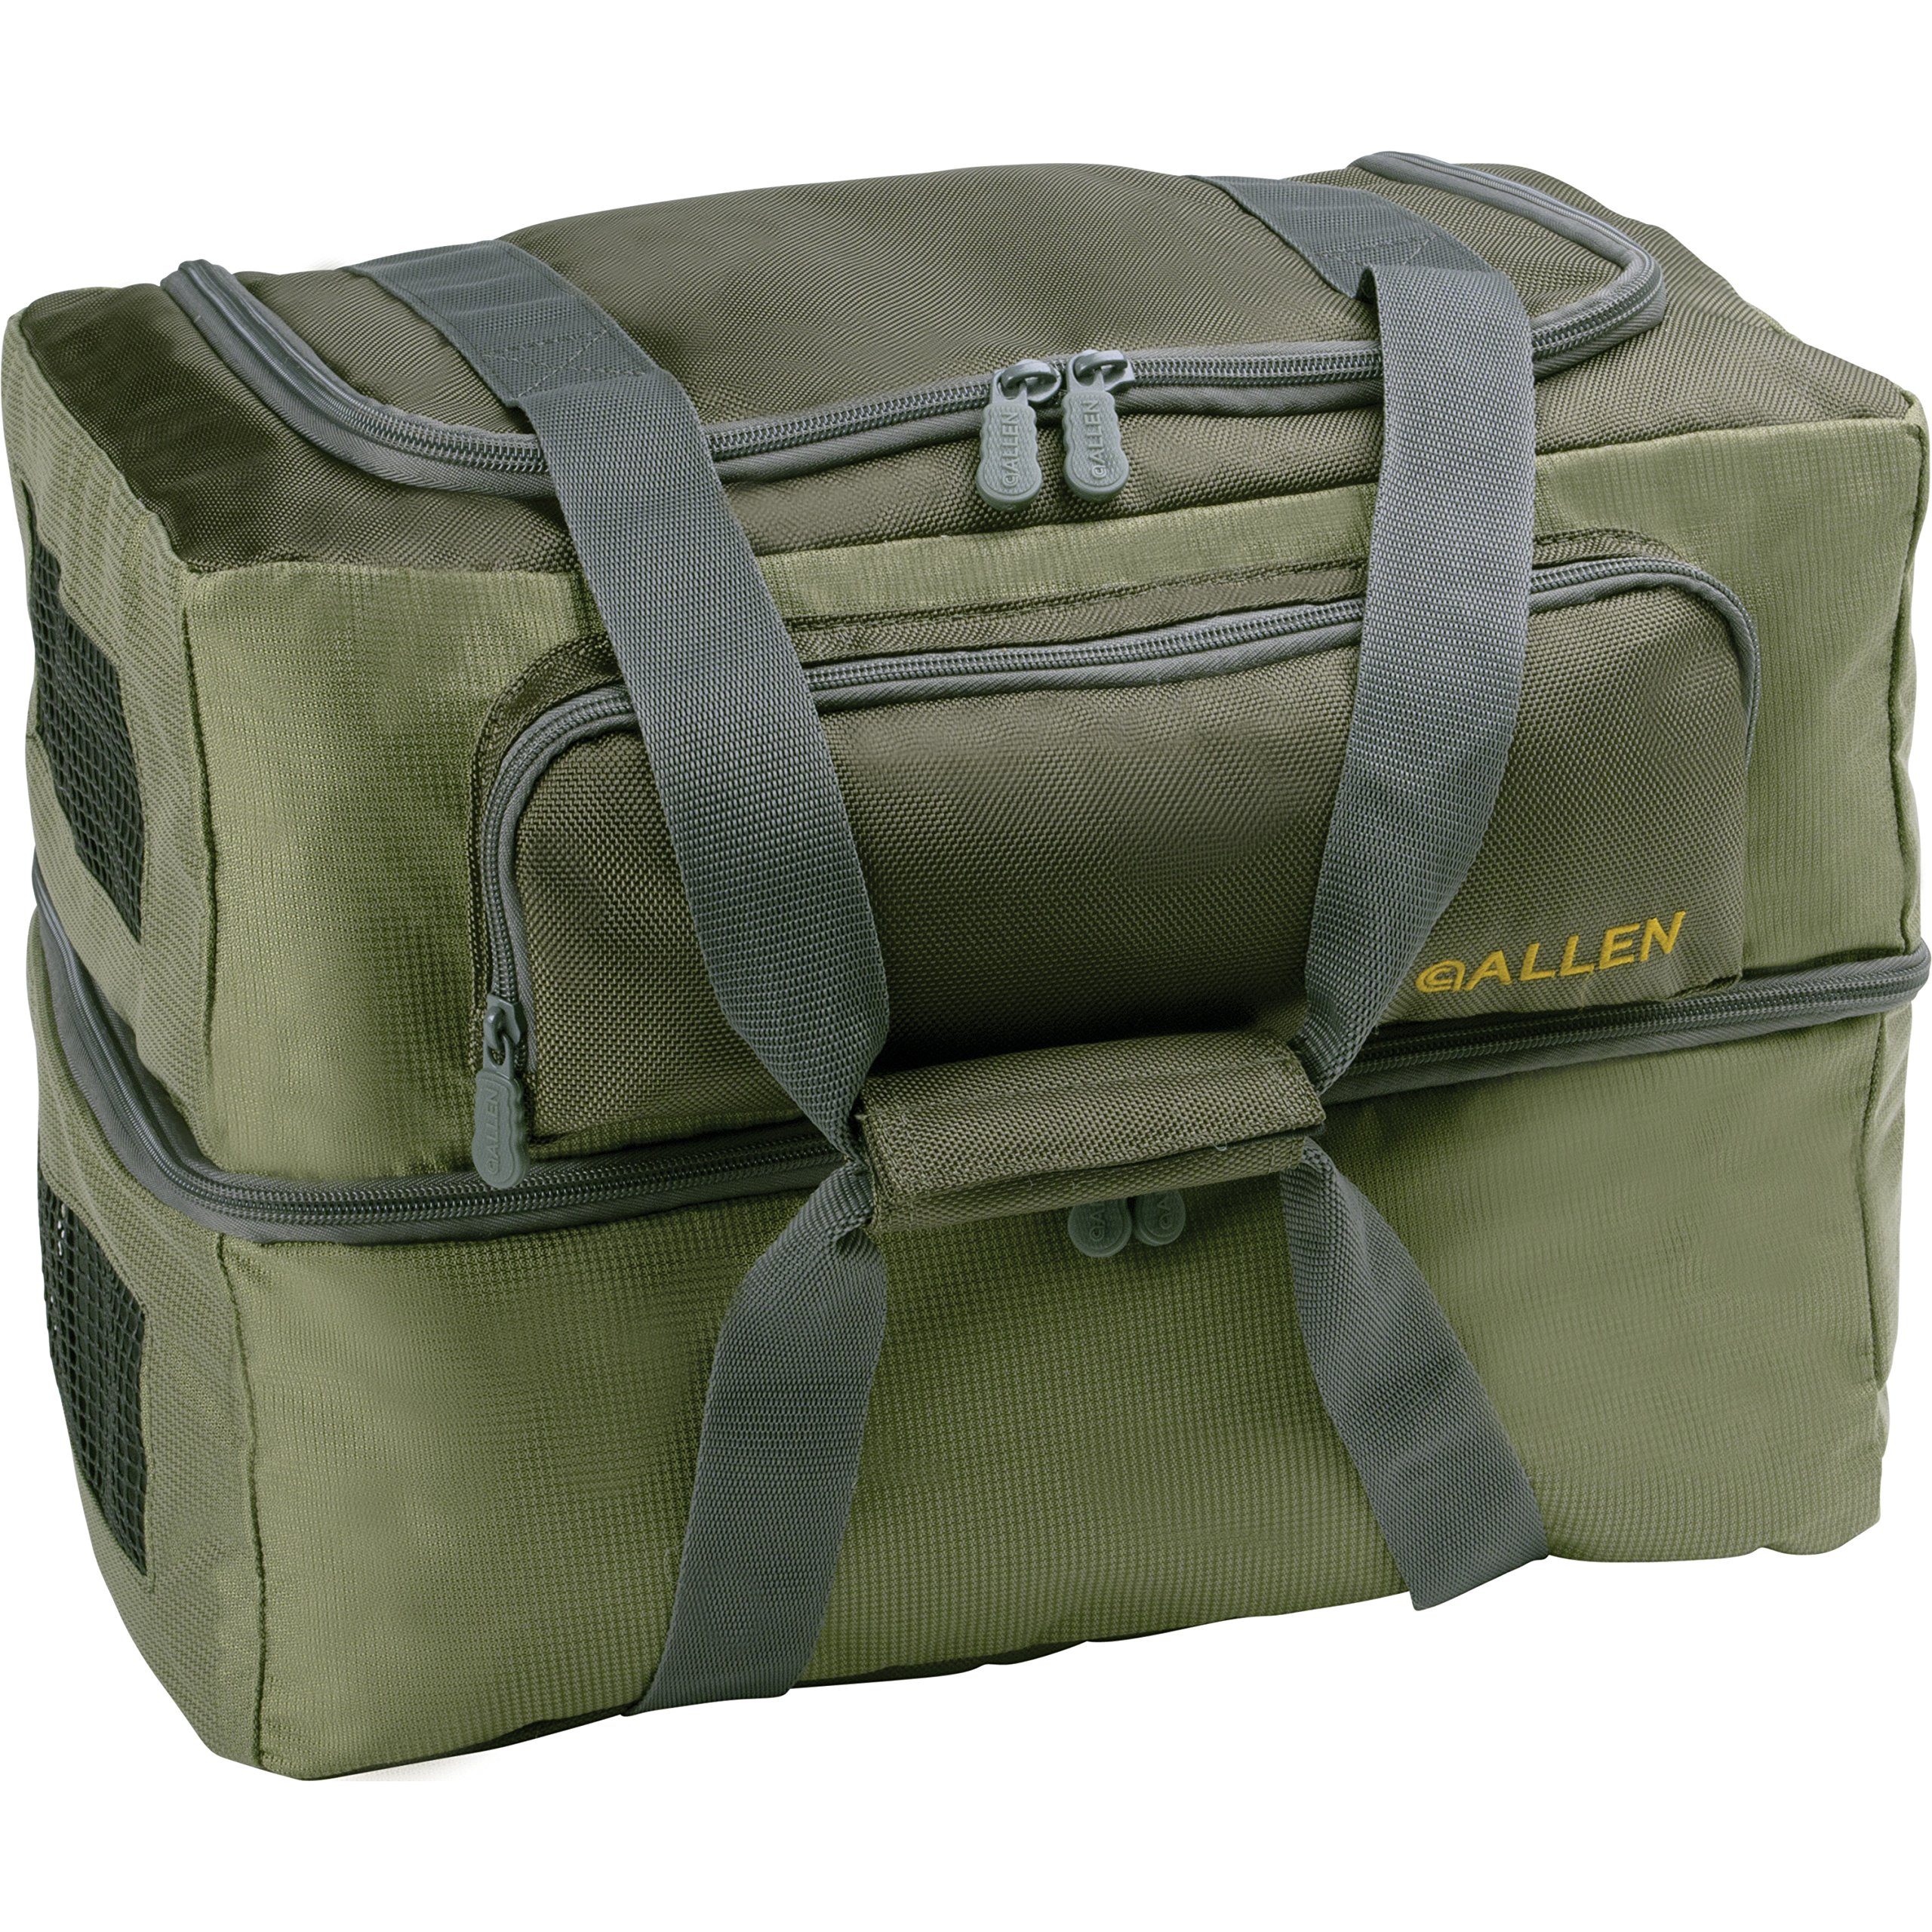 "Allen Twin Creek Carrying Case For Wader - Olive - Mesh Panel - 13"" Height X 12"" Width X 12"" Depth (6366)"